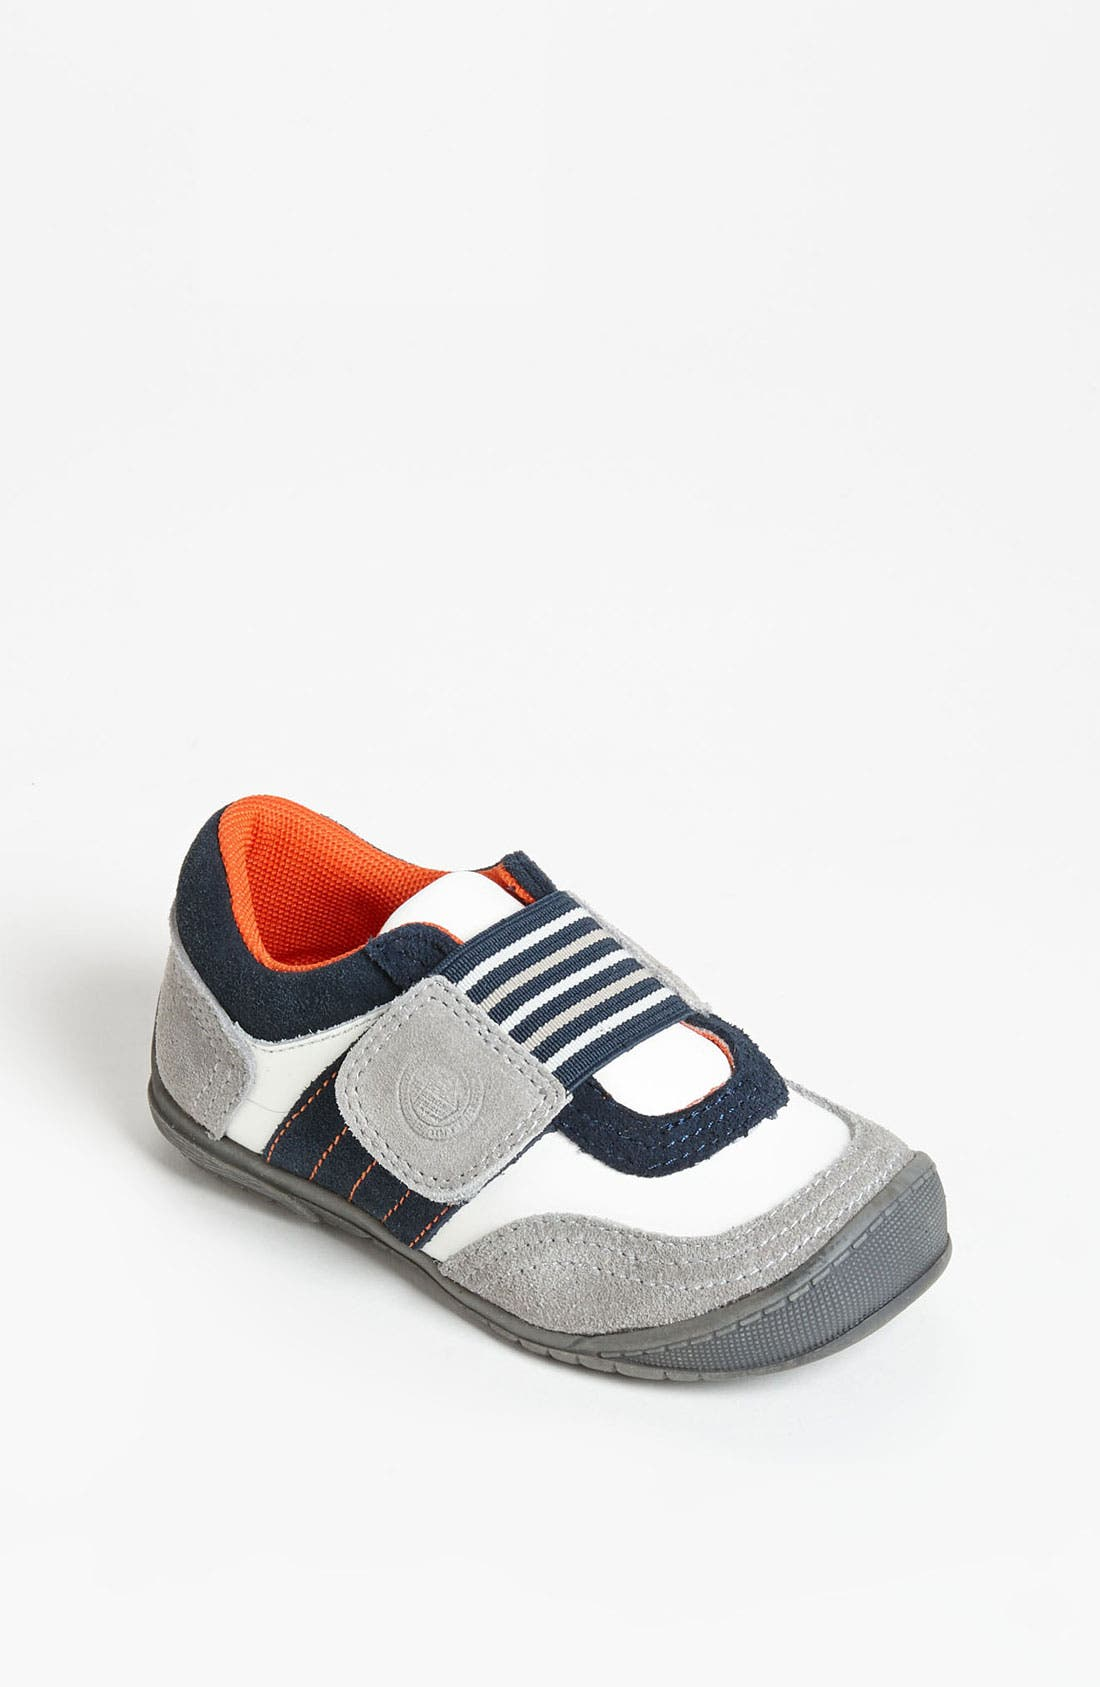 Alternate Image 1 Selected - Kenneth Cole Reaction 'Bet-Setting 2' Sneaker (Walker & Toddler)